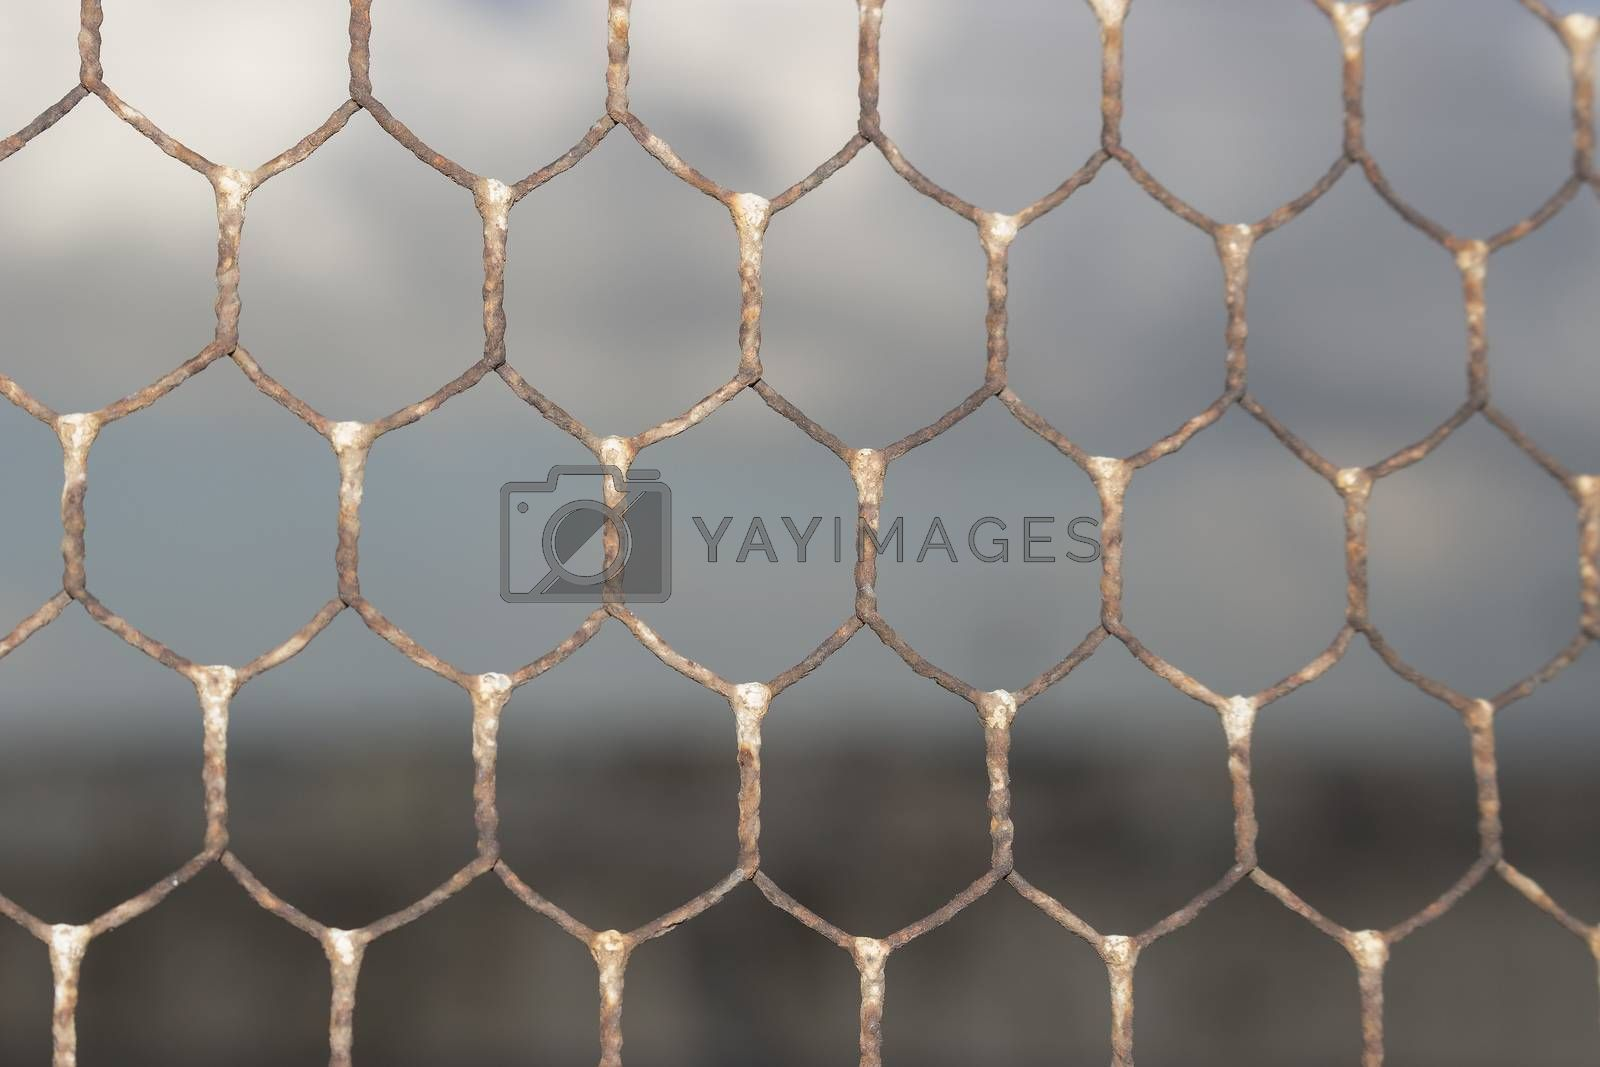 Rusty old wire netting on the roof of Doxi Stracca Fontana Palace about 1760 A.D. in the old town of Gallipoli (Le)) in the southern Italy